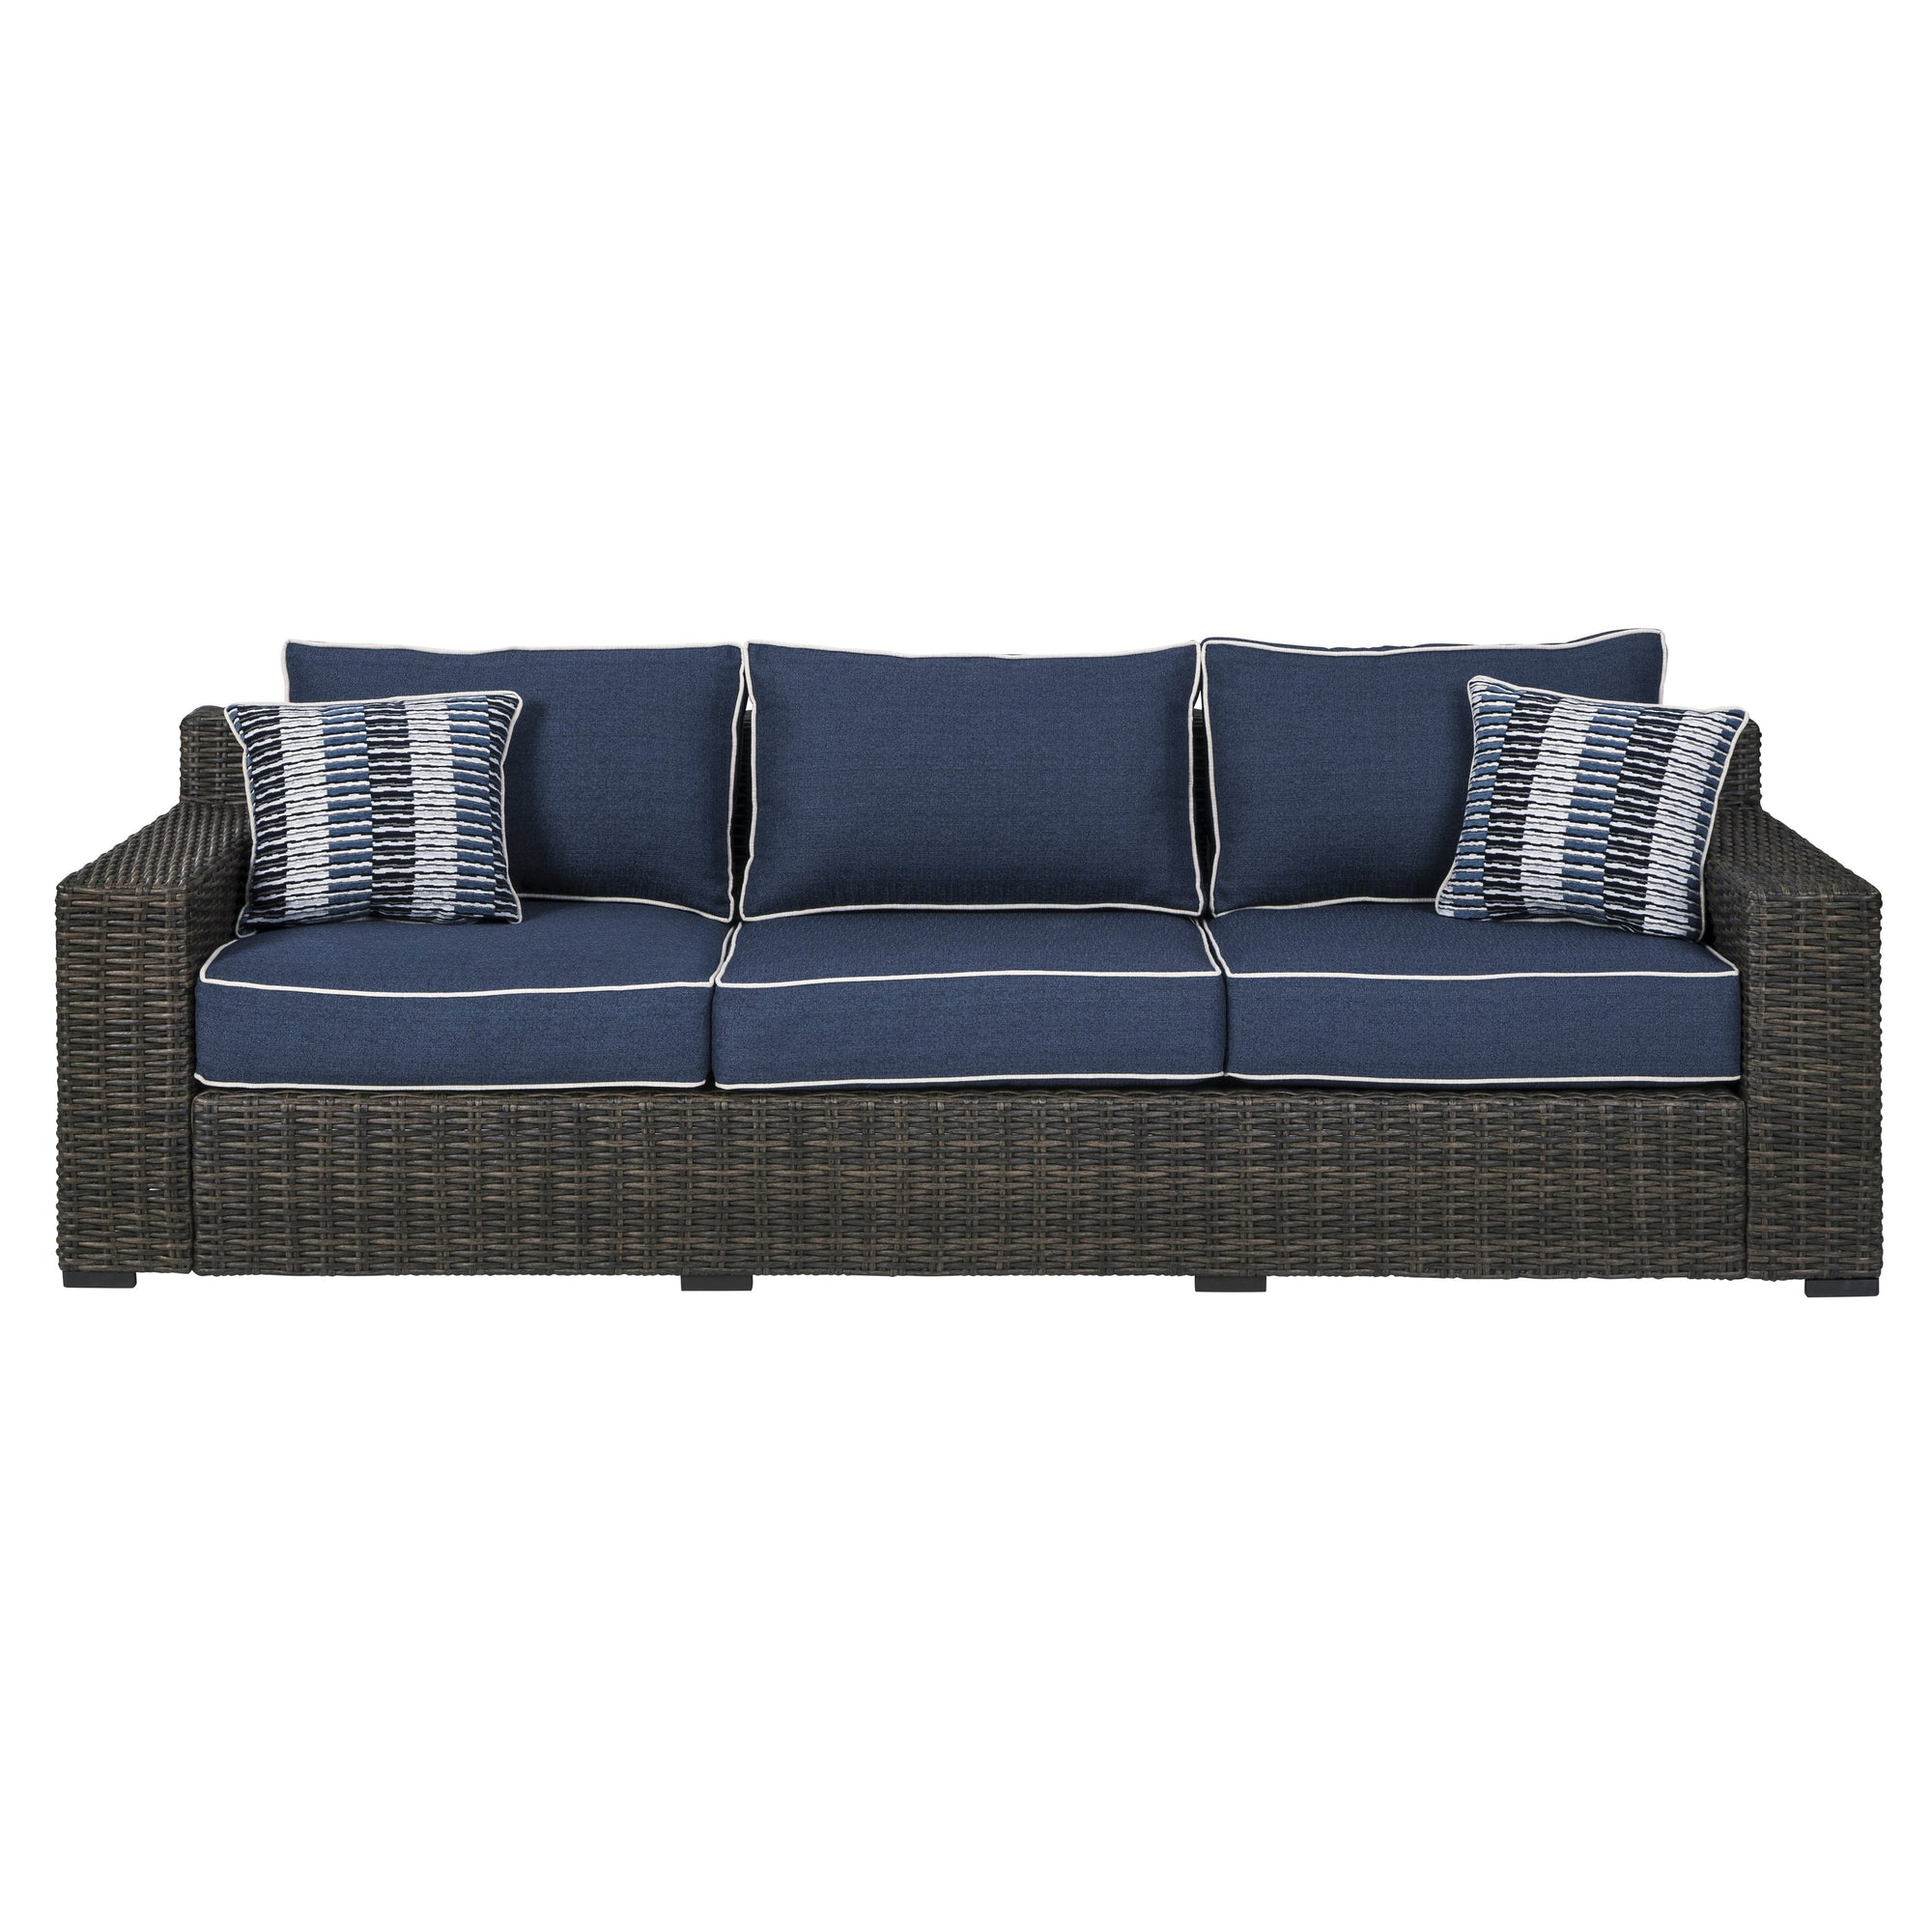 Sag Harbor Outdoor Sofa